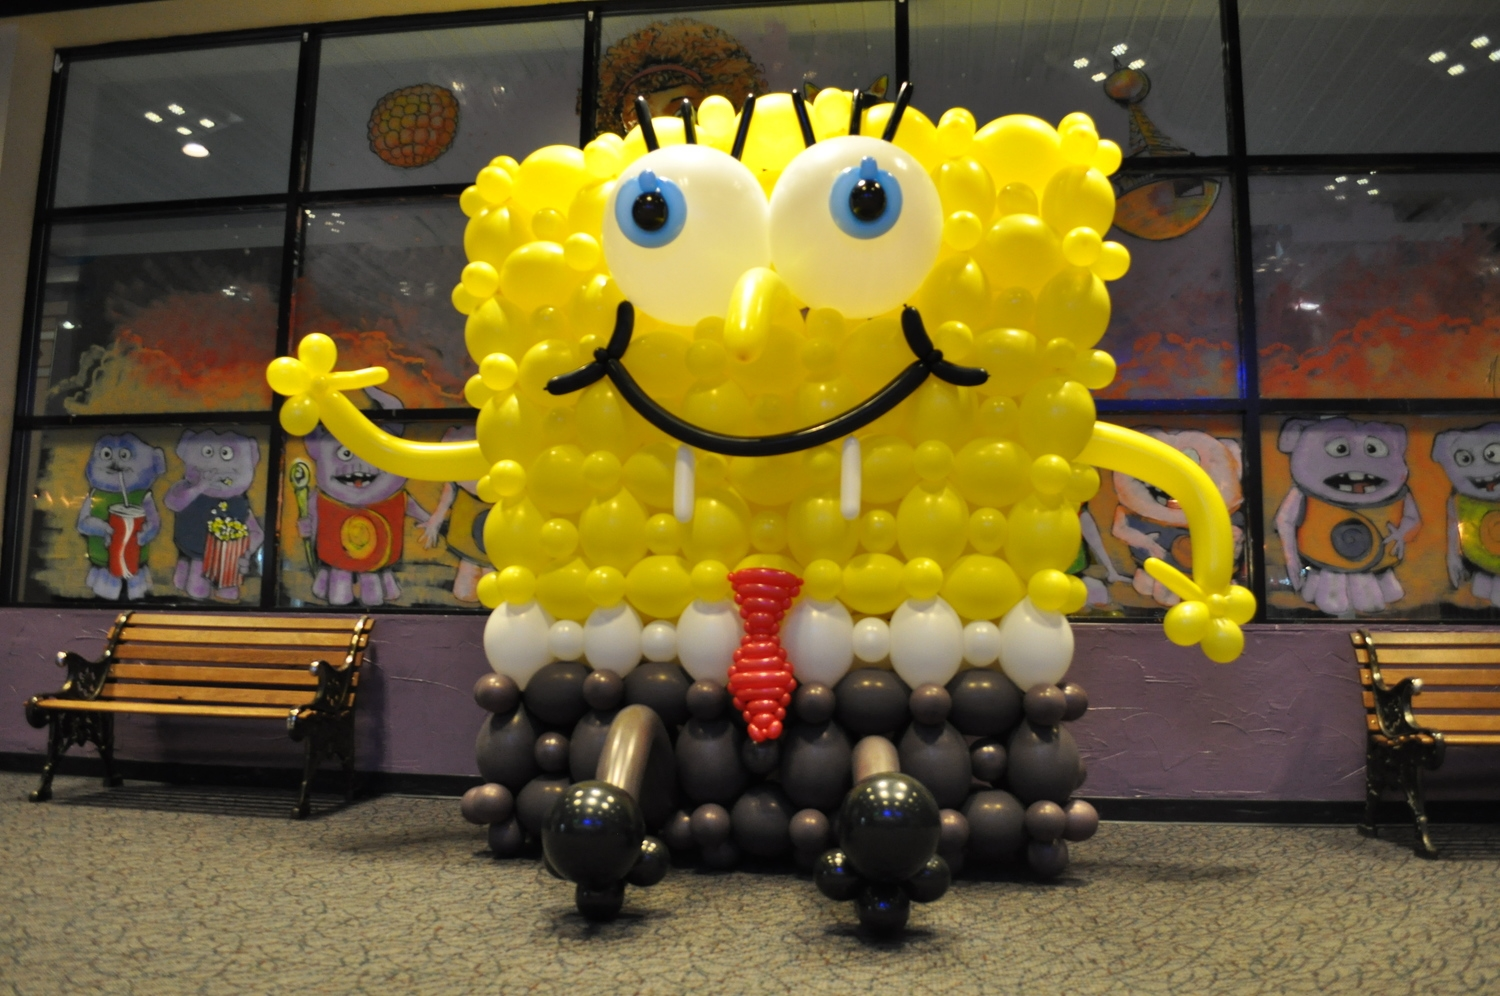 SpongeBob-Squarepants-Balloon-Sculpture.jpeg